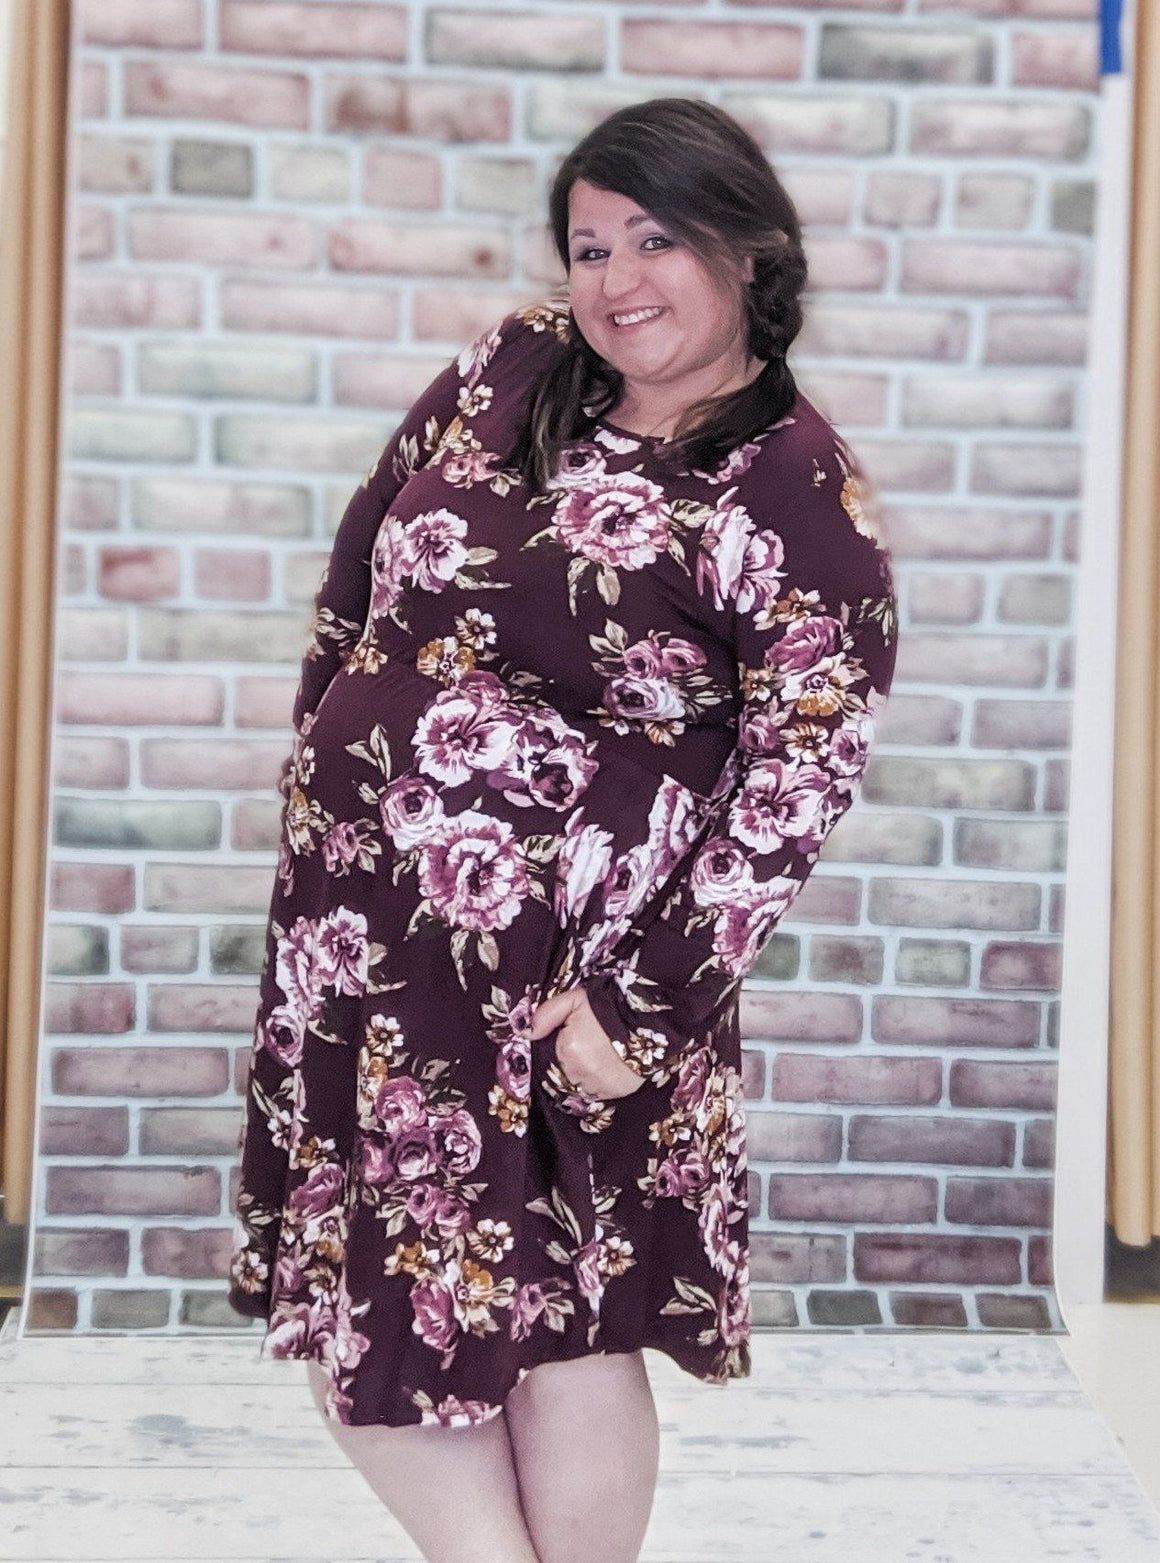 Burgundy Floral Long Sleeve Dress Dresses Stacked - Fashion for Curves